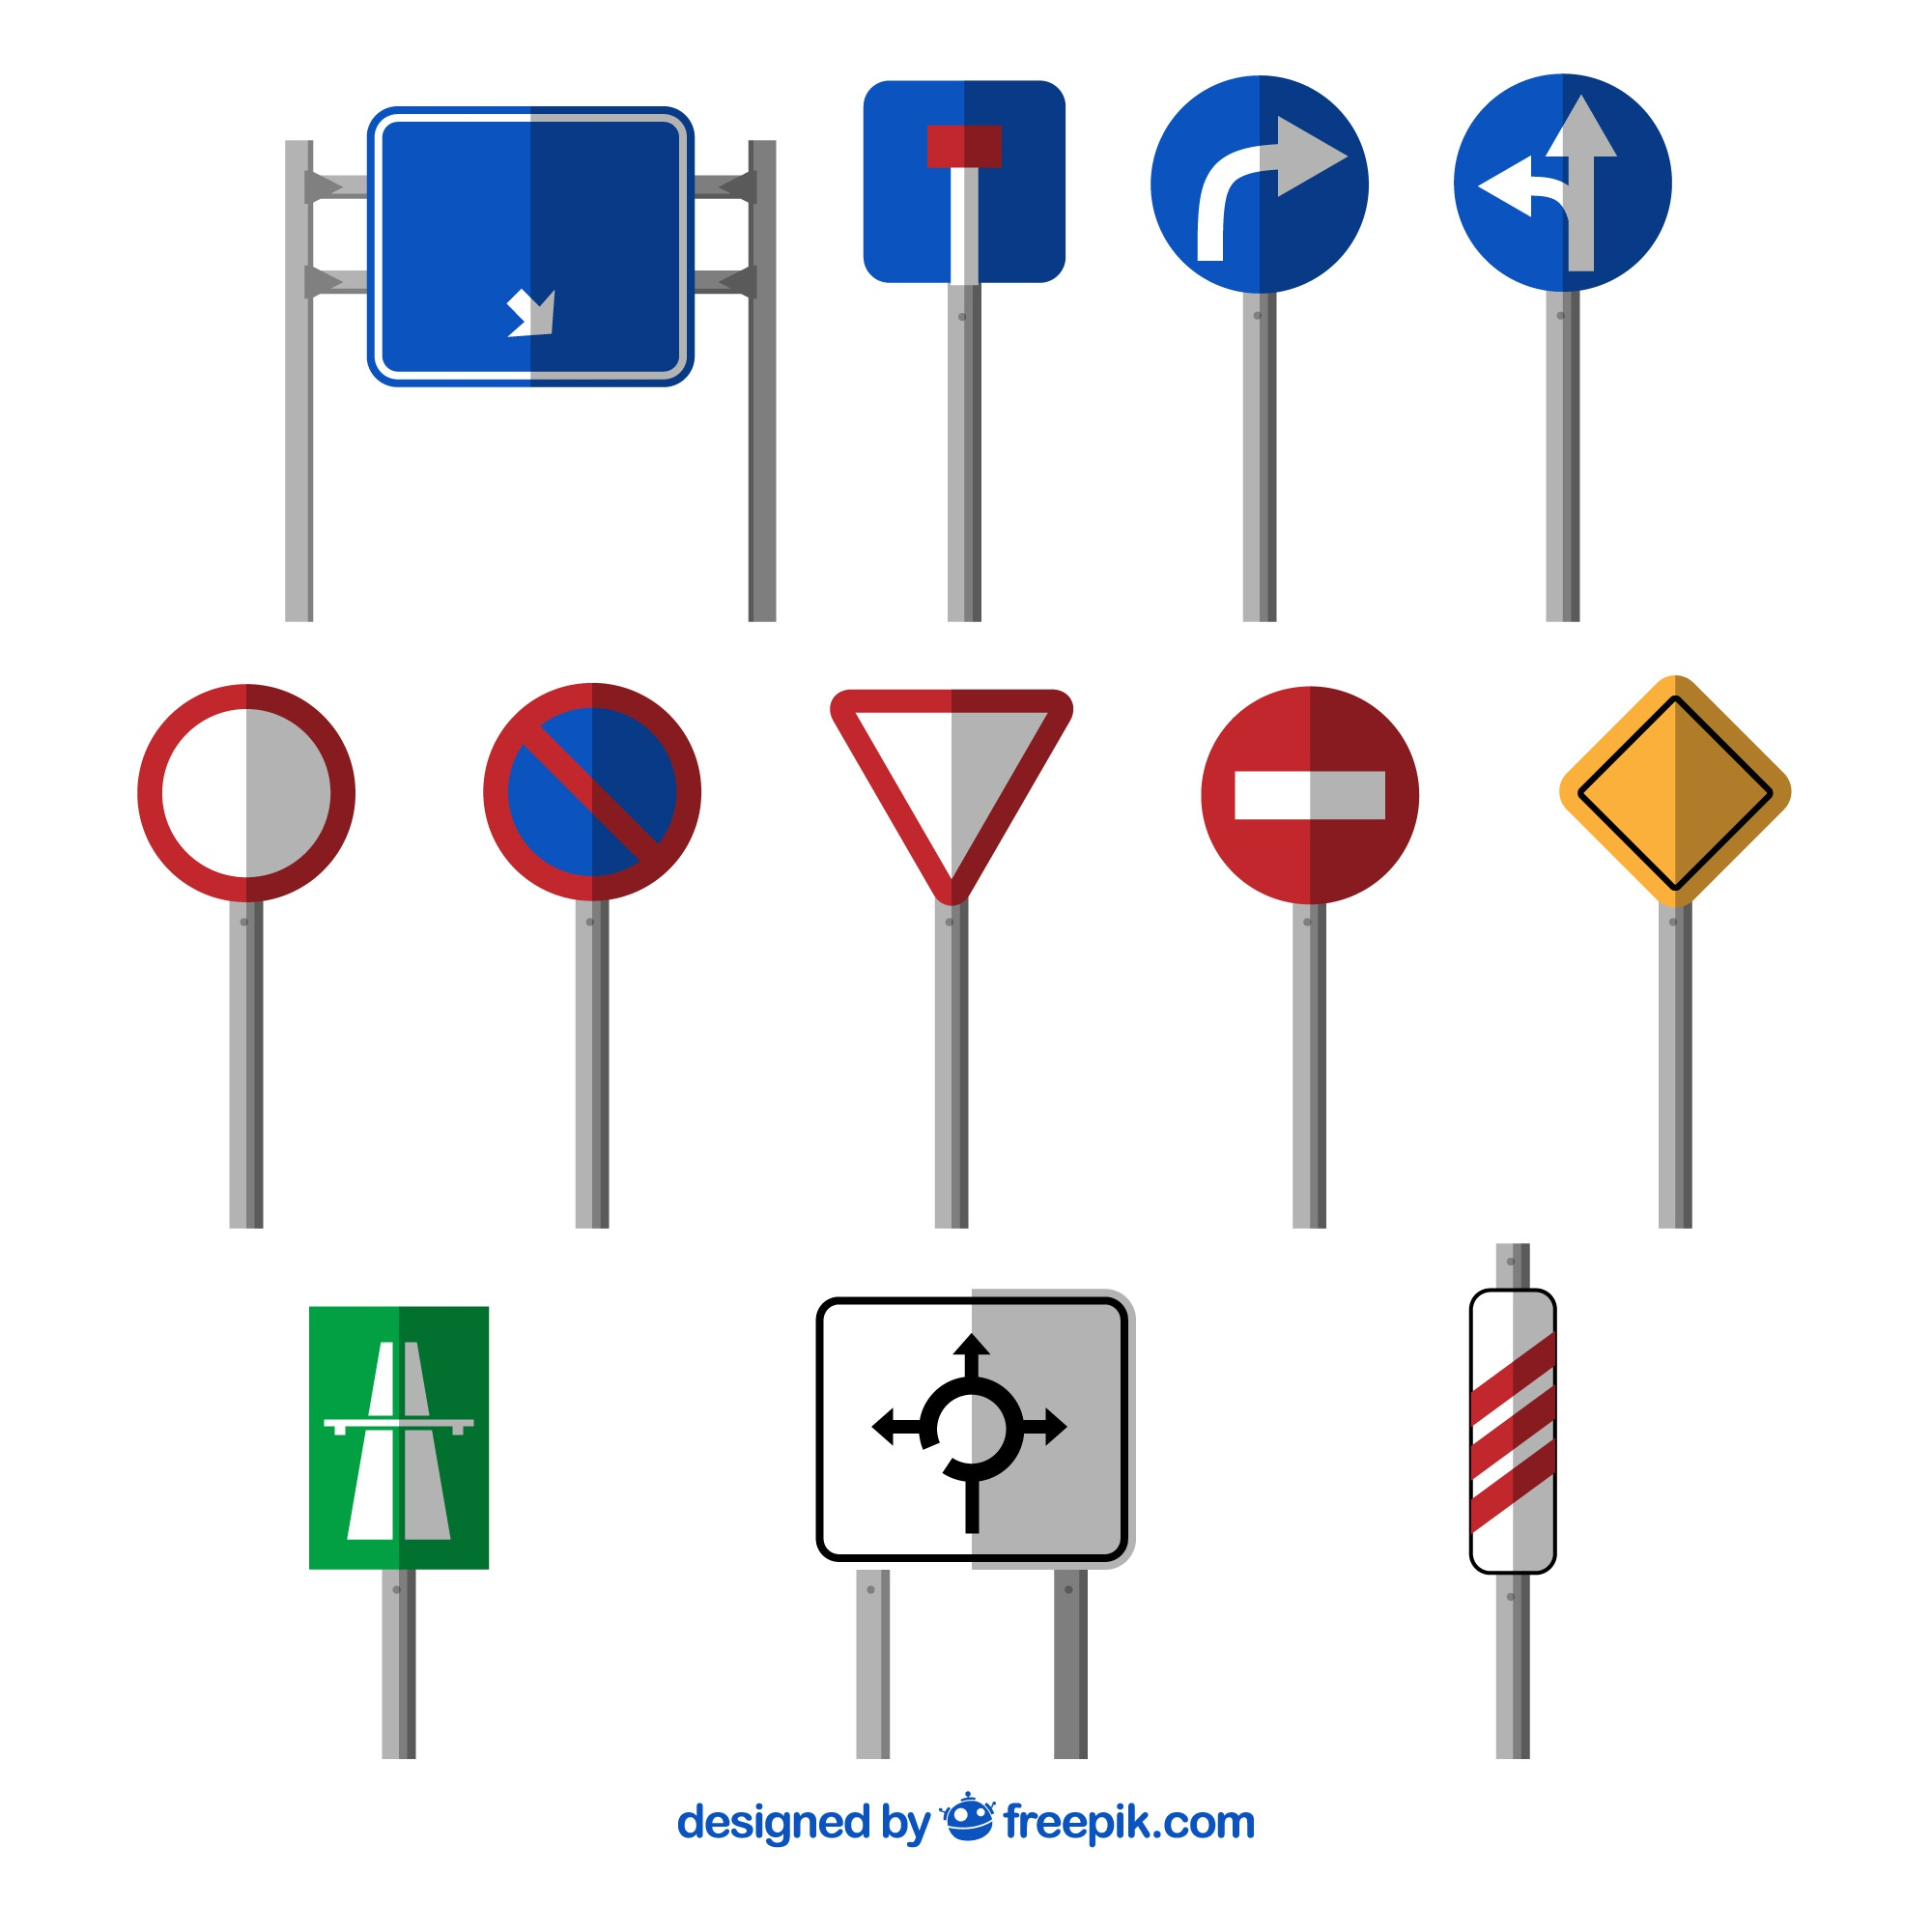 Collection of traffic sign in flat design